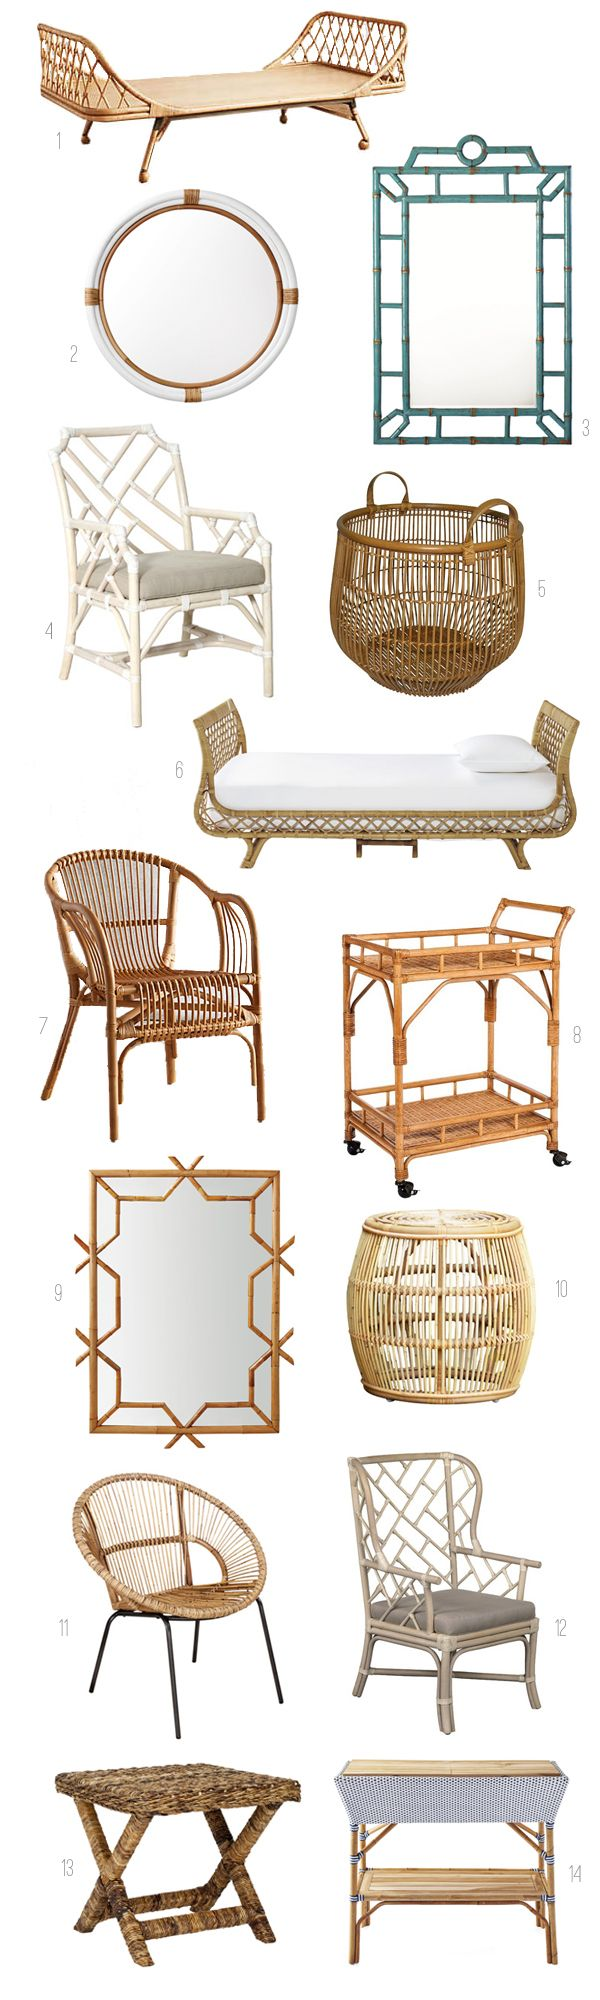 Rattan Decor and Furniture Roundup - The Inspired Room